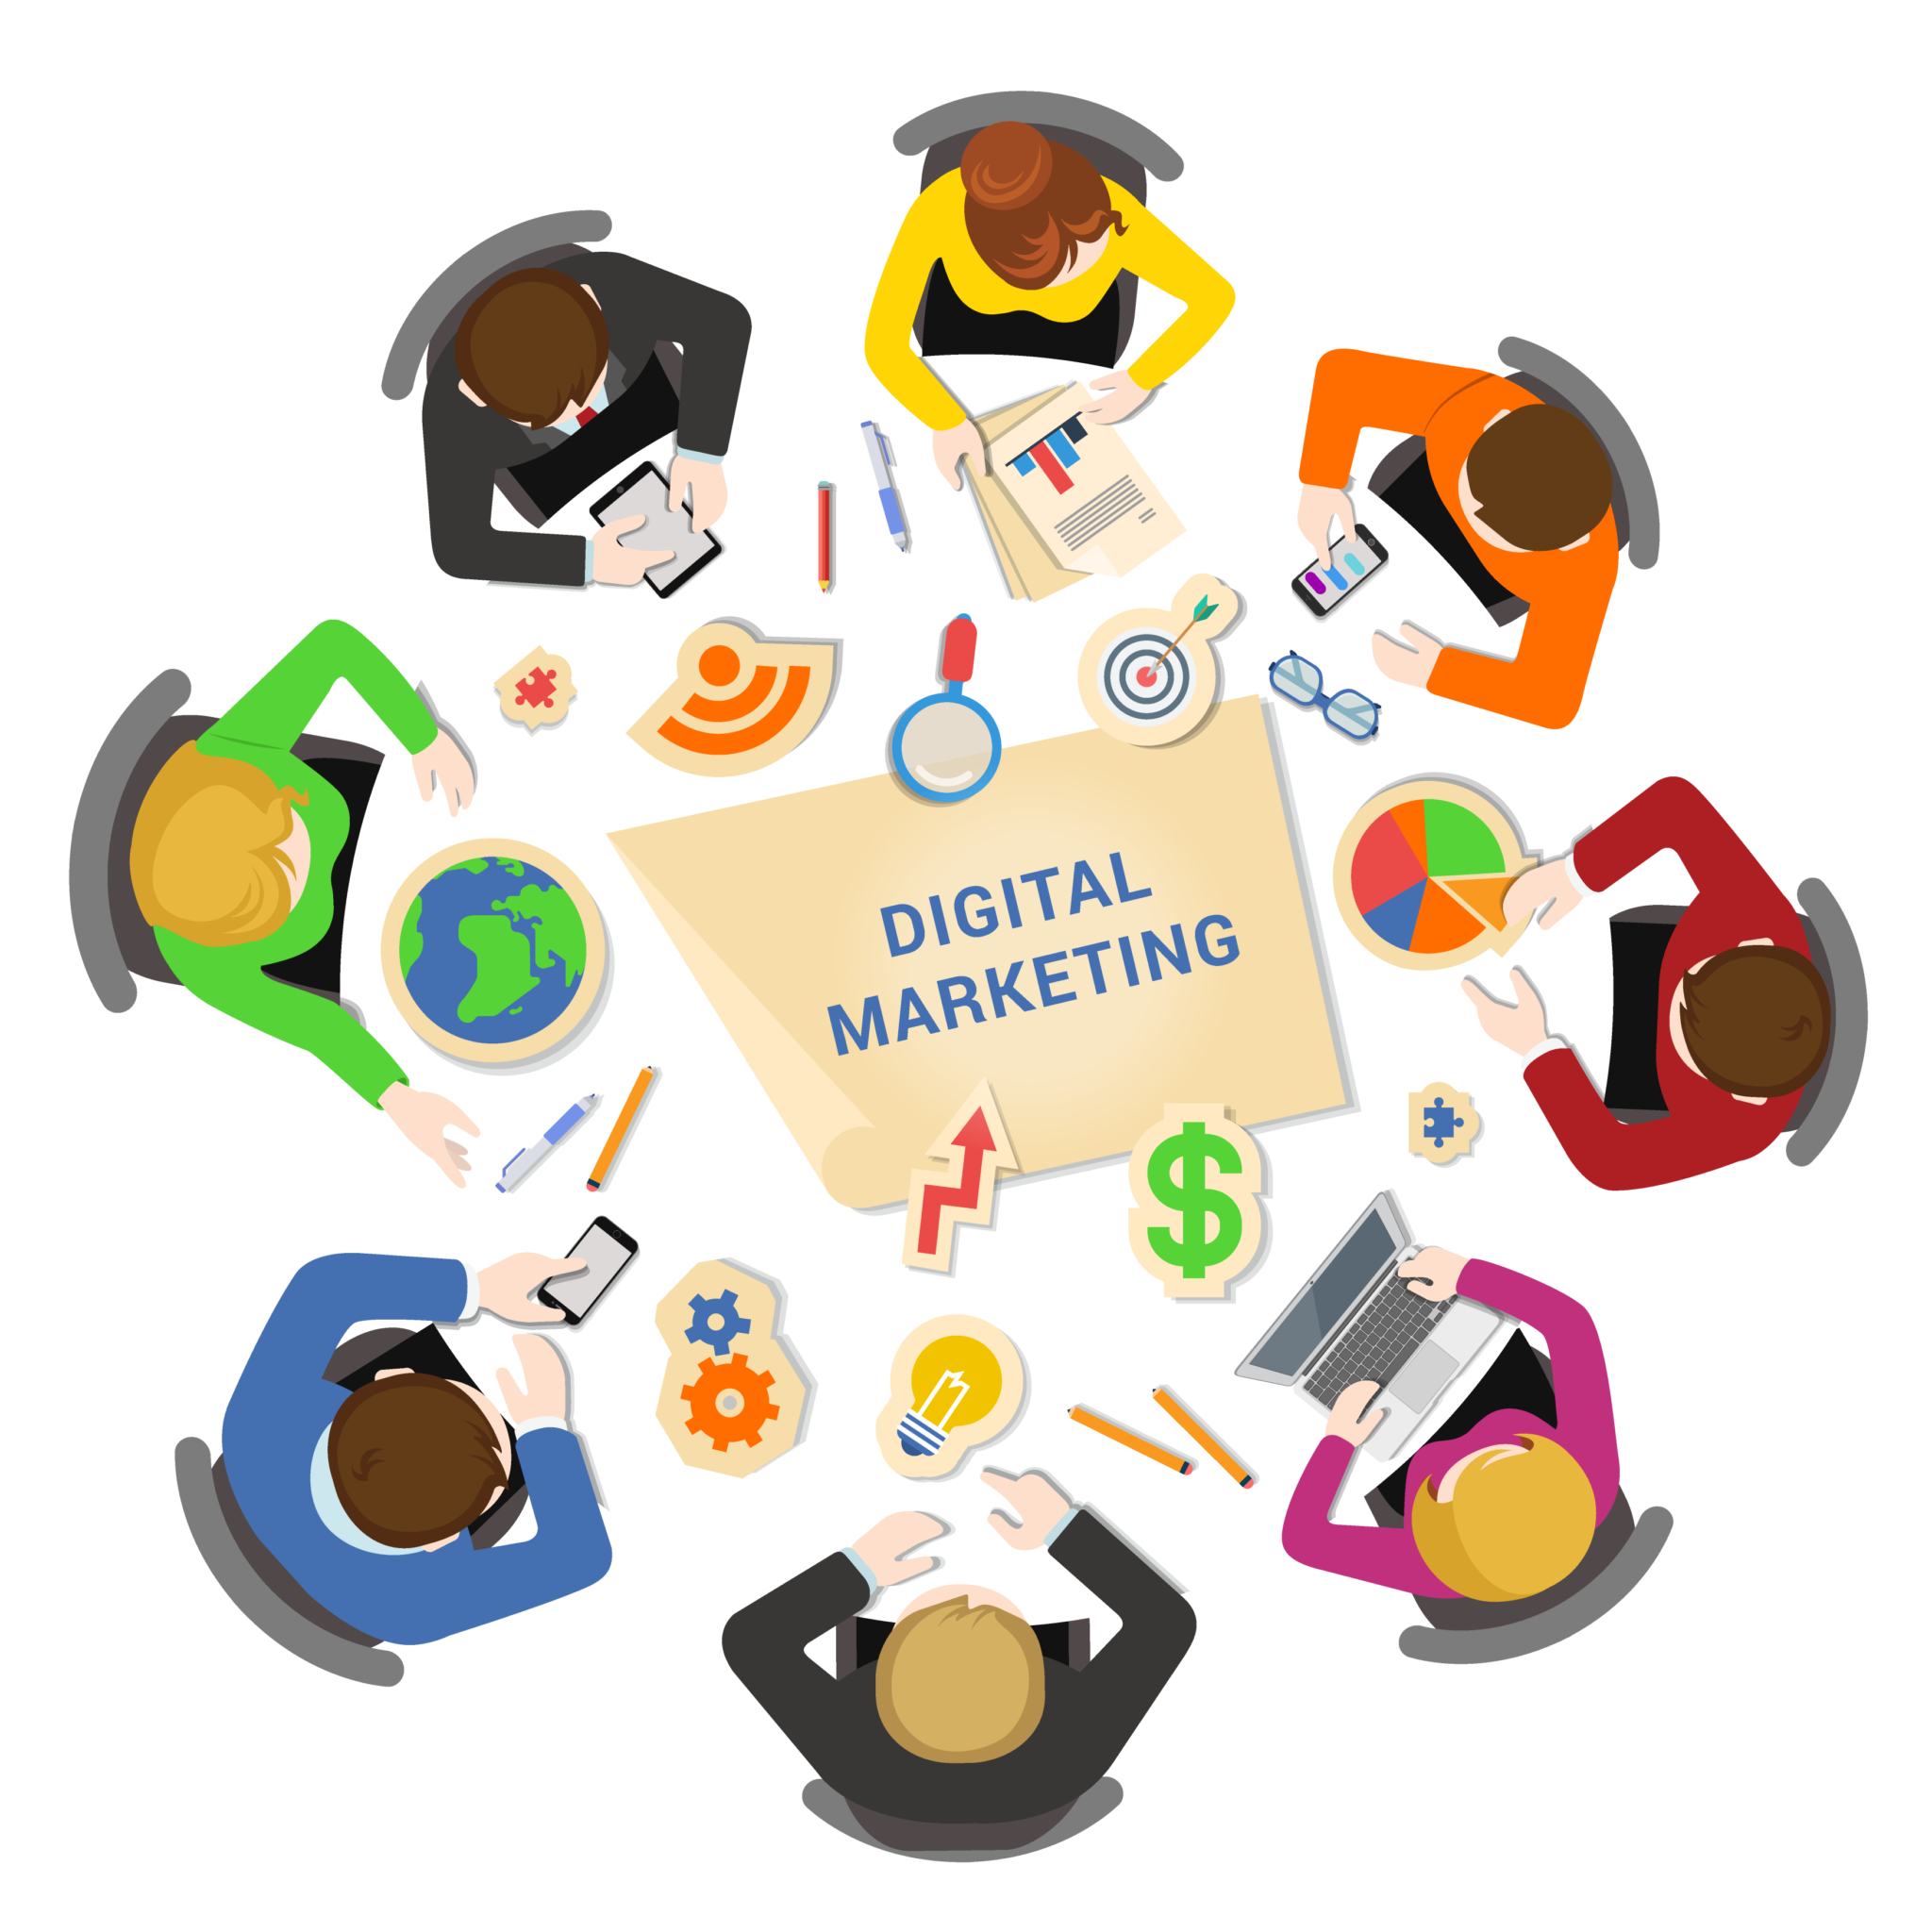 Digital Marketing Services in the USA, Canada, and UAE